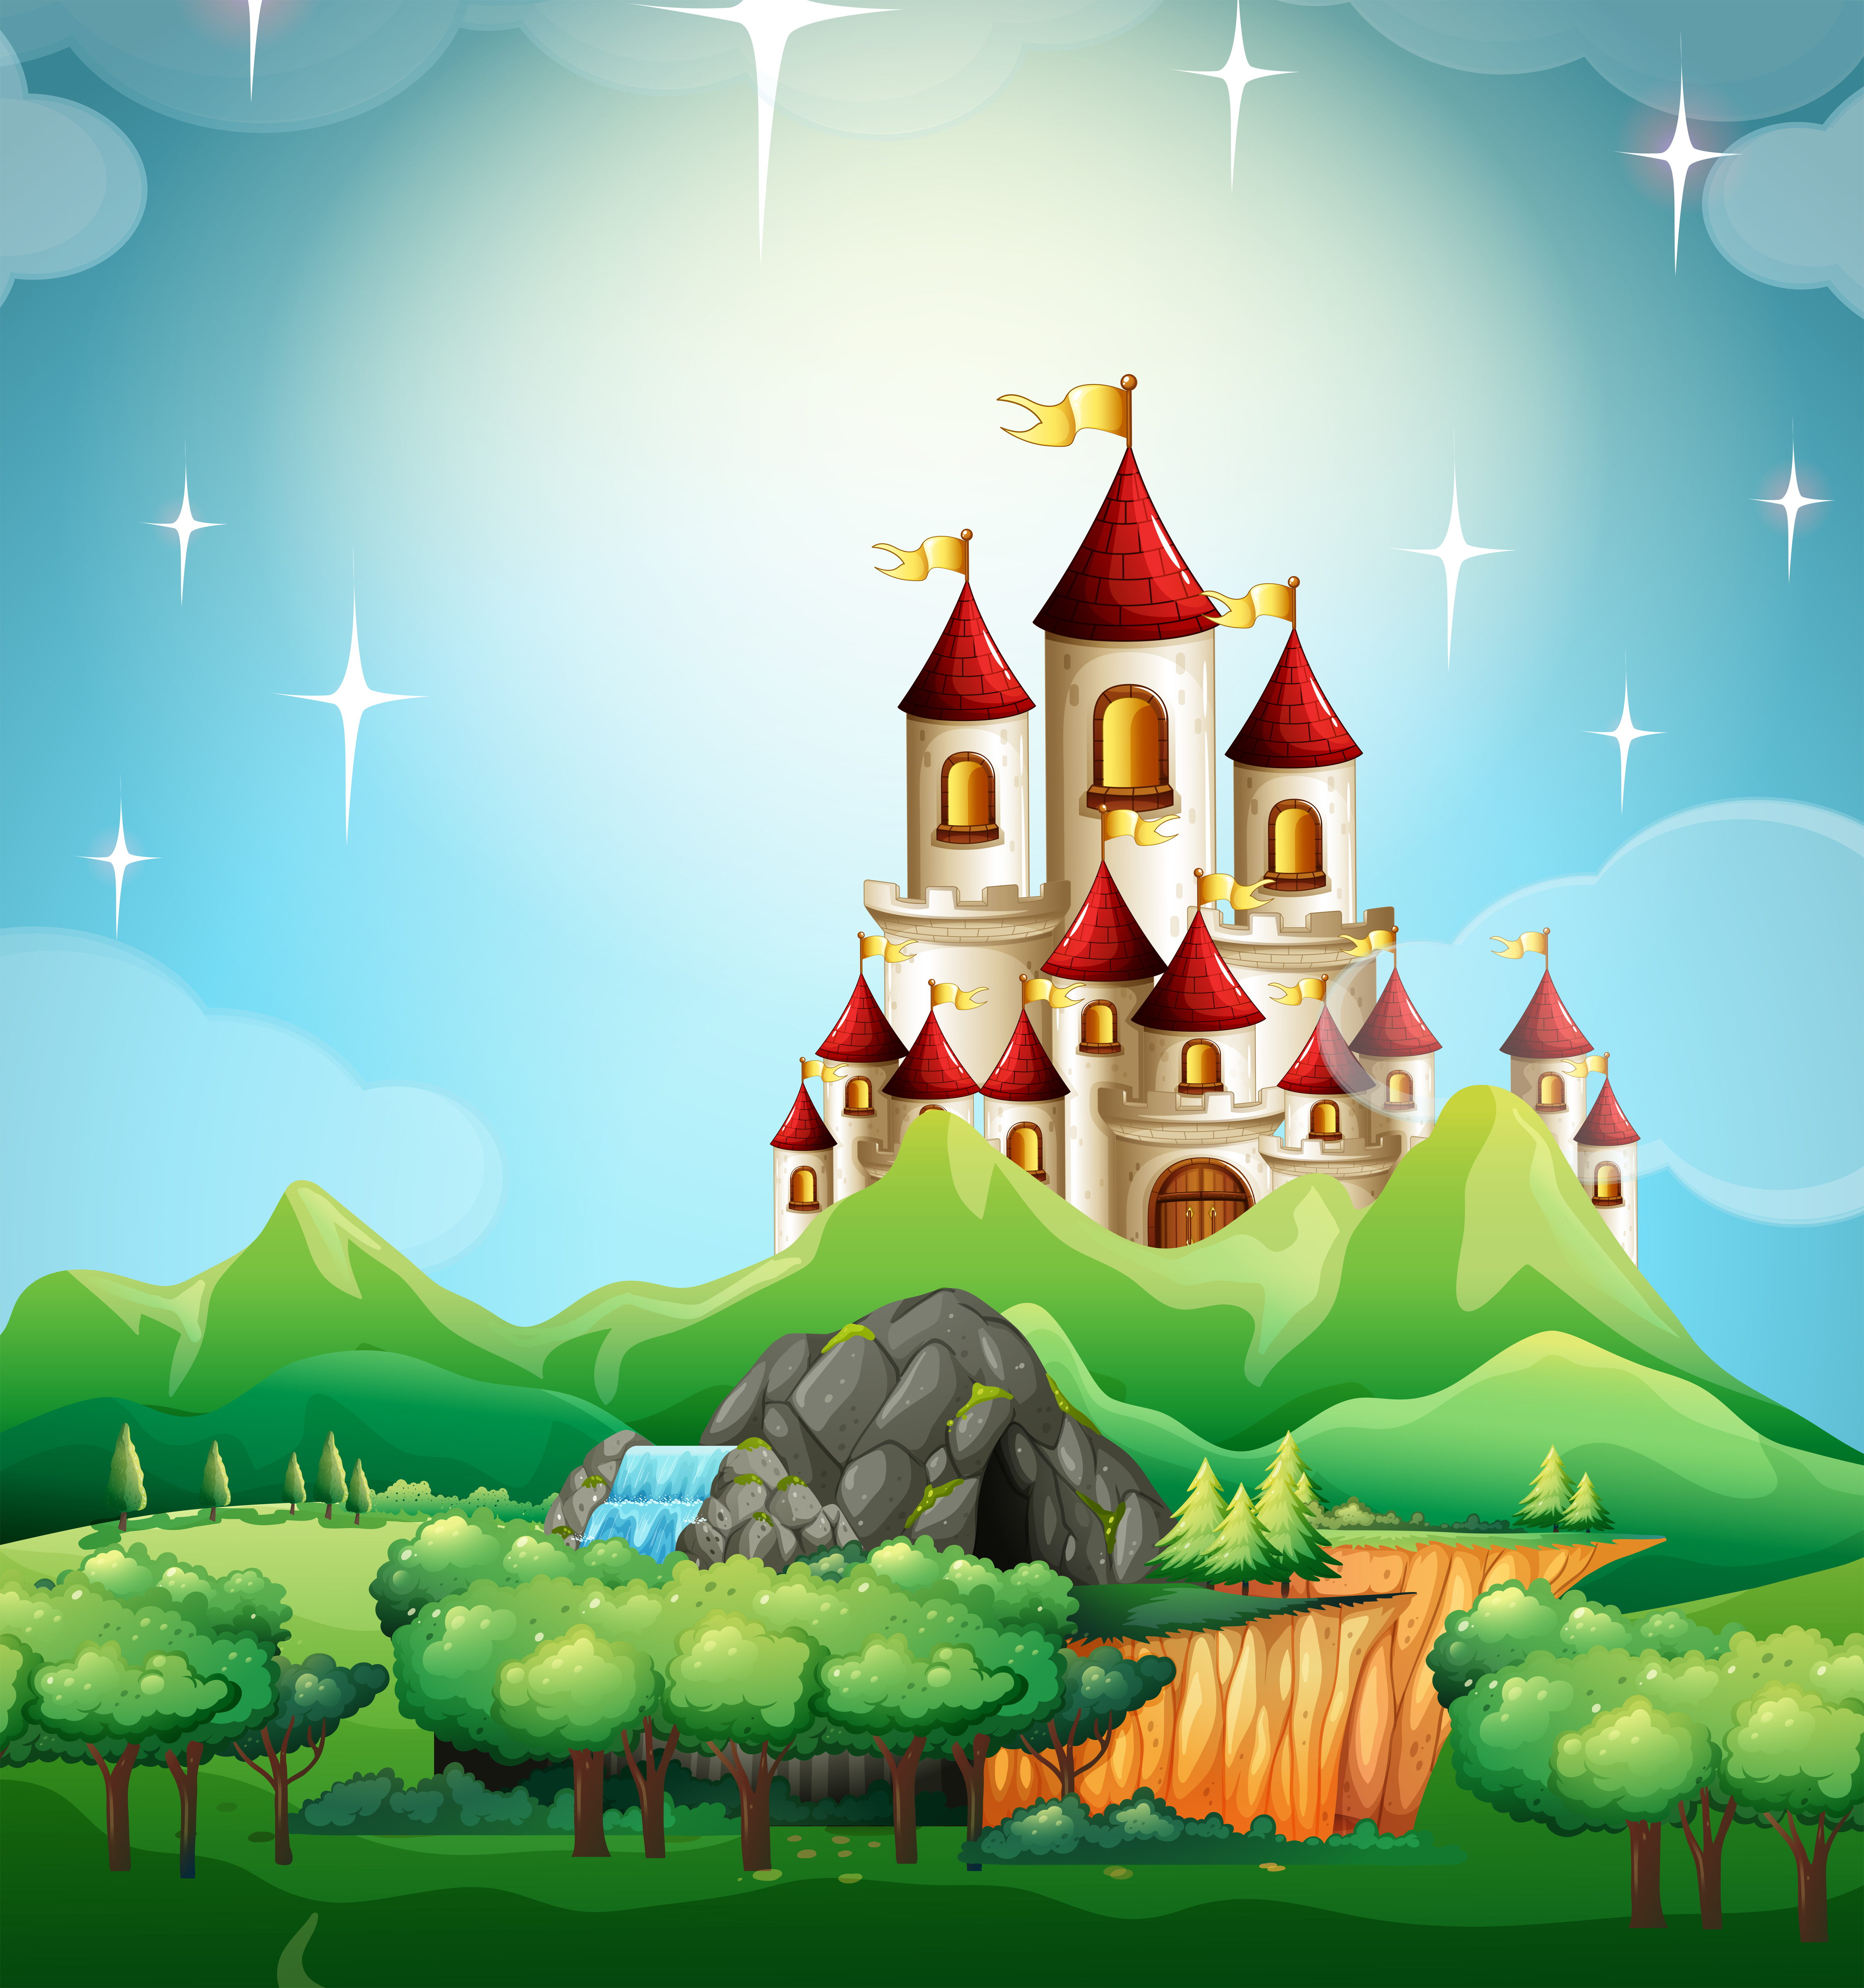 Scene With Castle And Forest Download Free Vectors